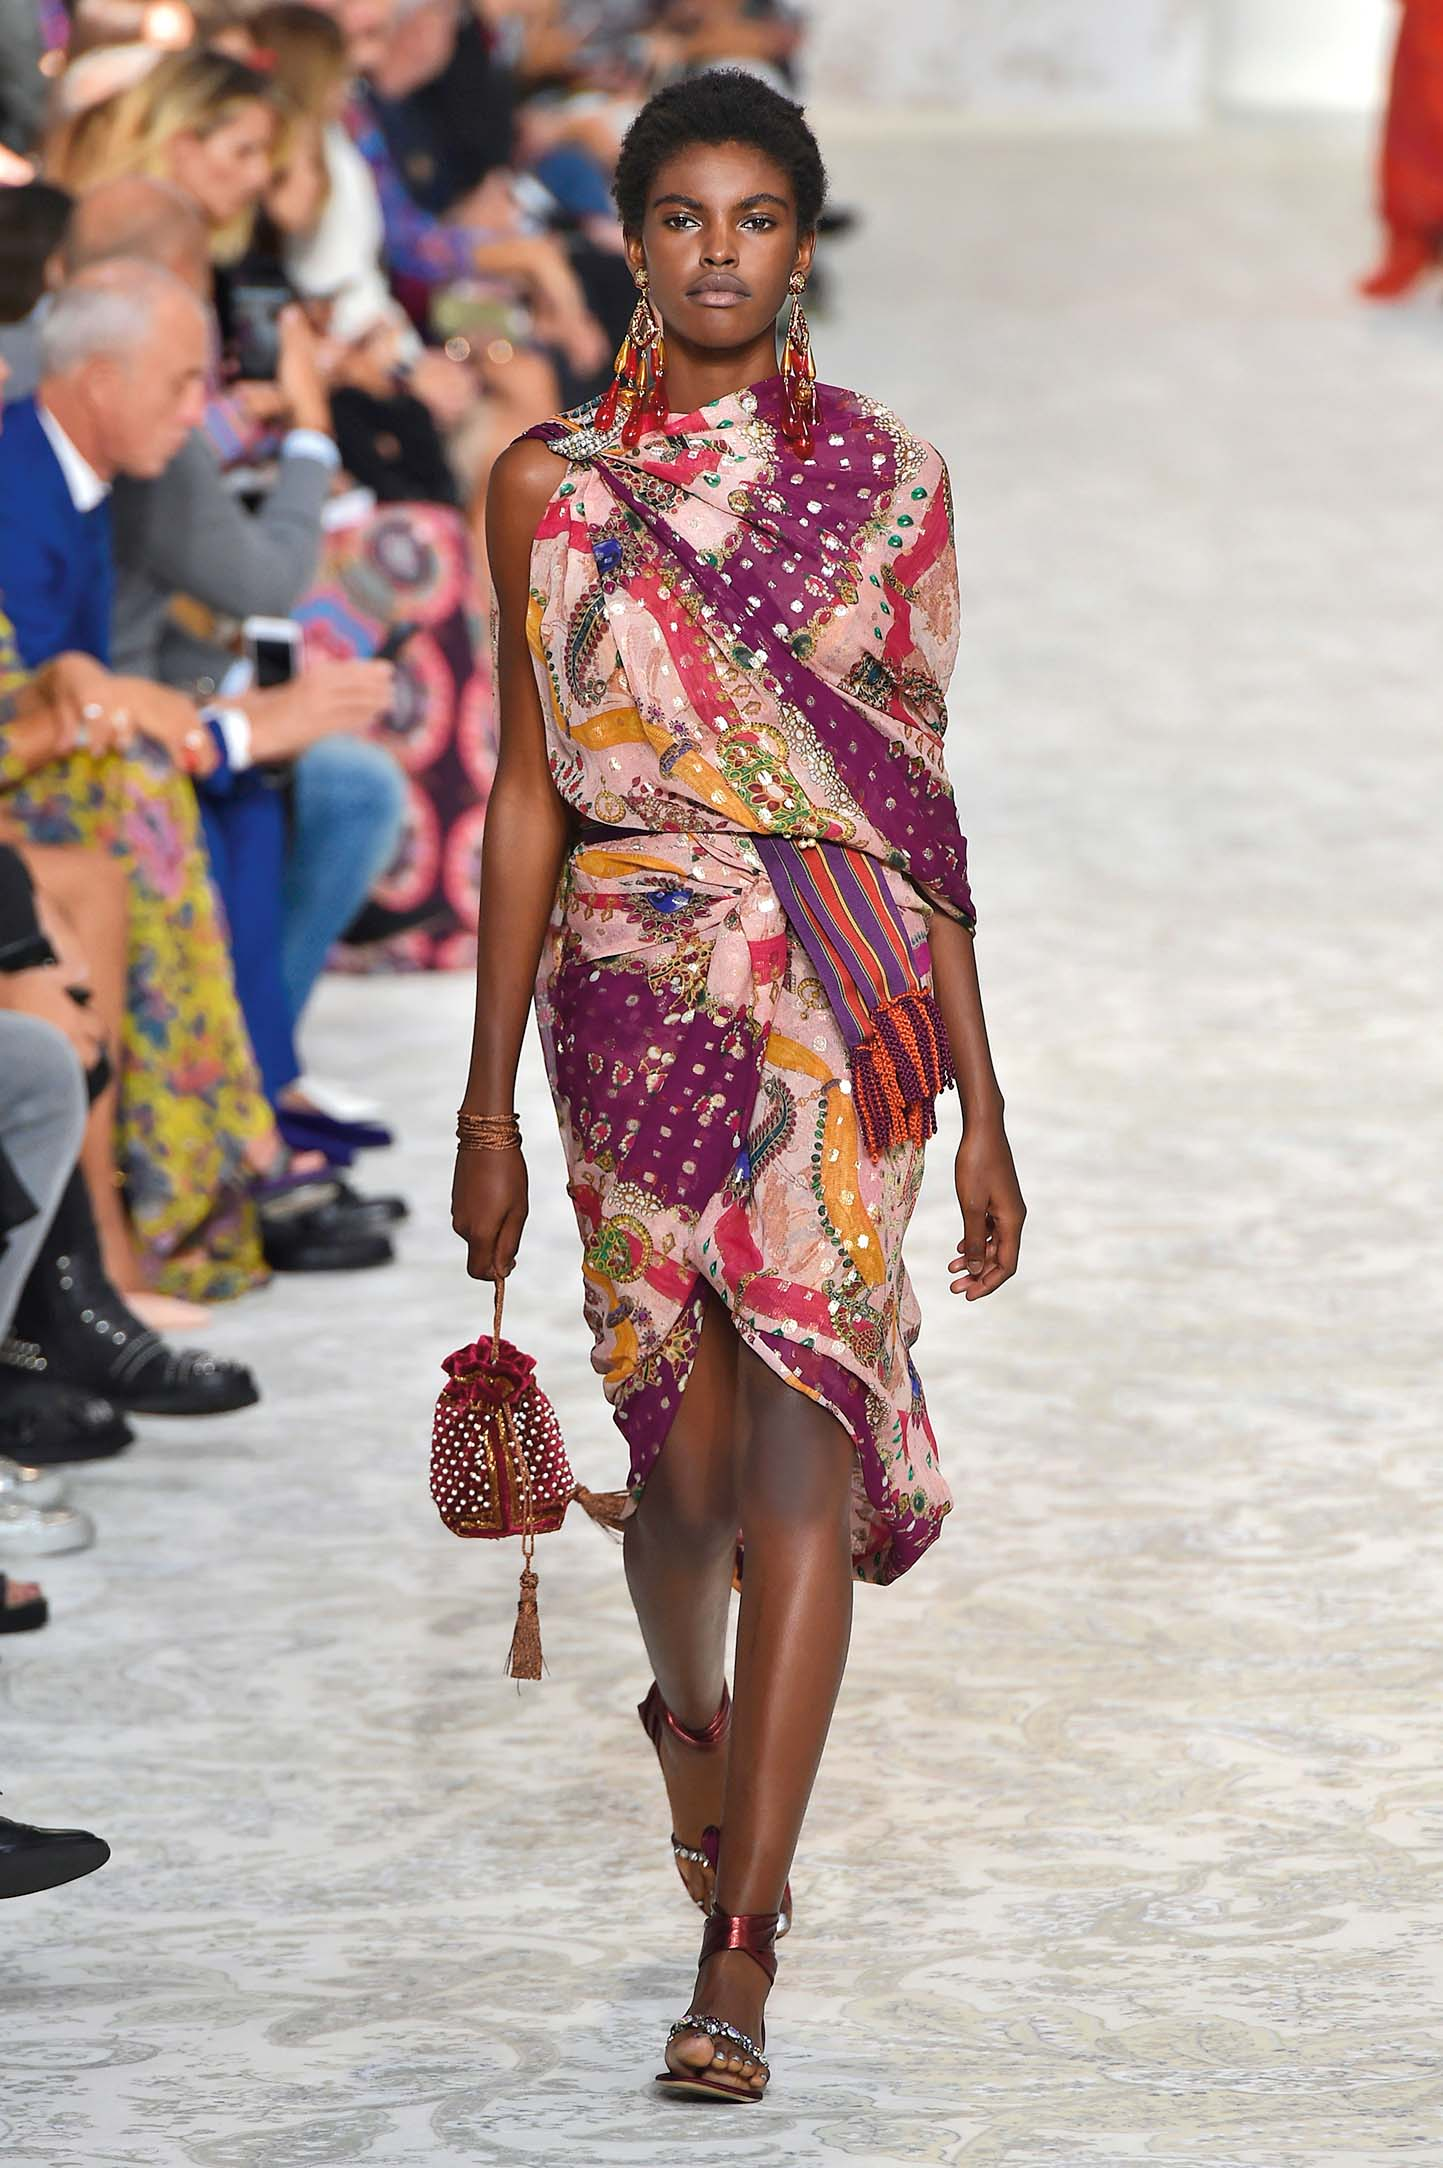 MILAN, ITALY - SEPTEMBER 22:  A model walks the runway at the Etro Spring Summer 2018 fashion show during Milan Fashion Week on September 22, 2017 in Milan, Italy.  (Photo by Catwalking/Getty Images)